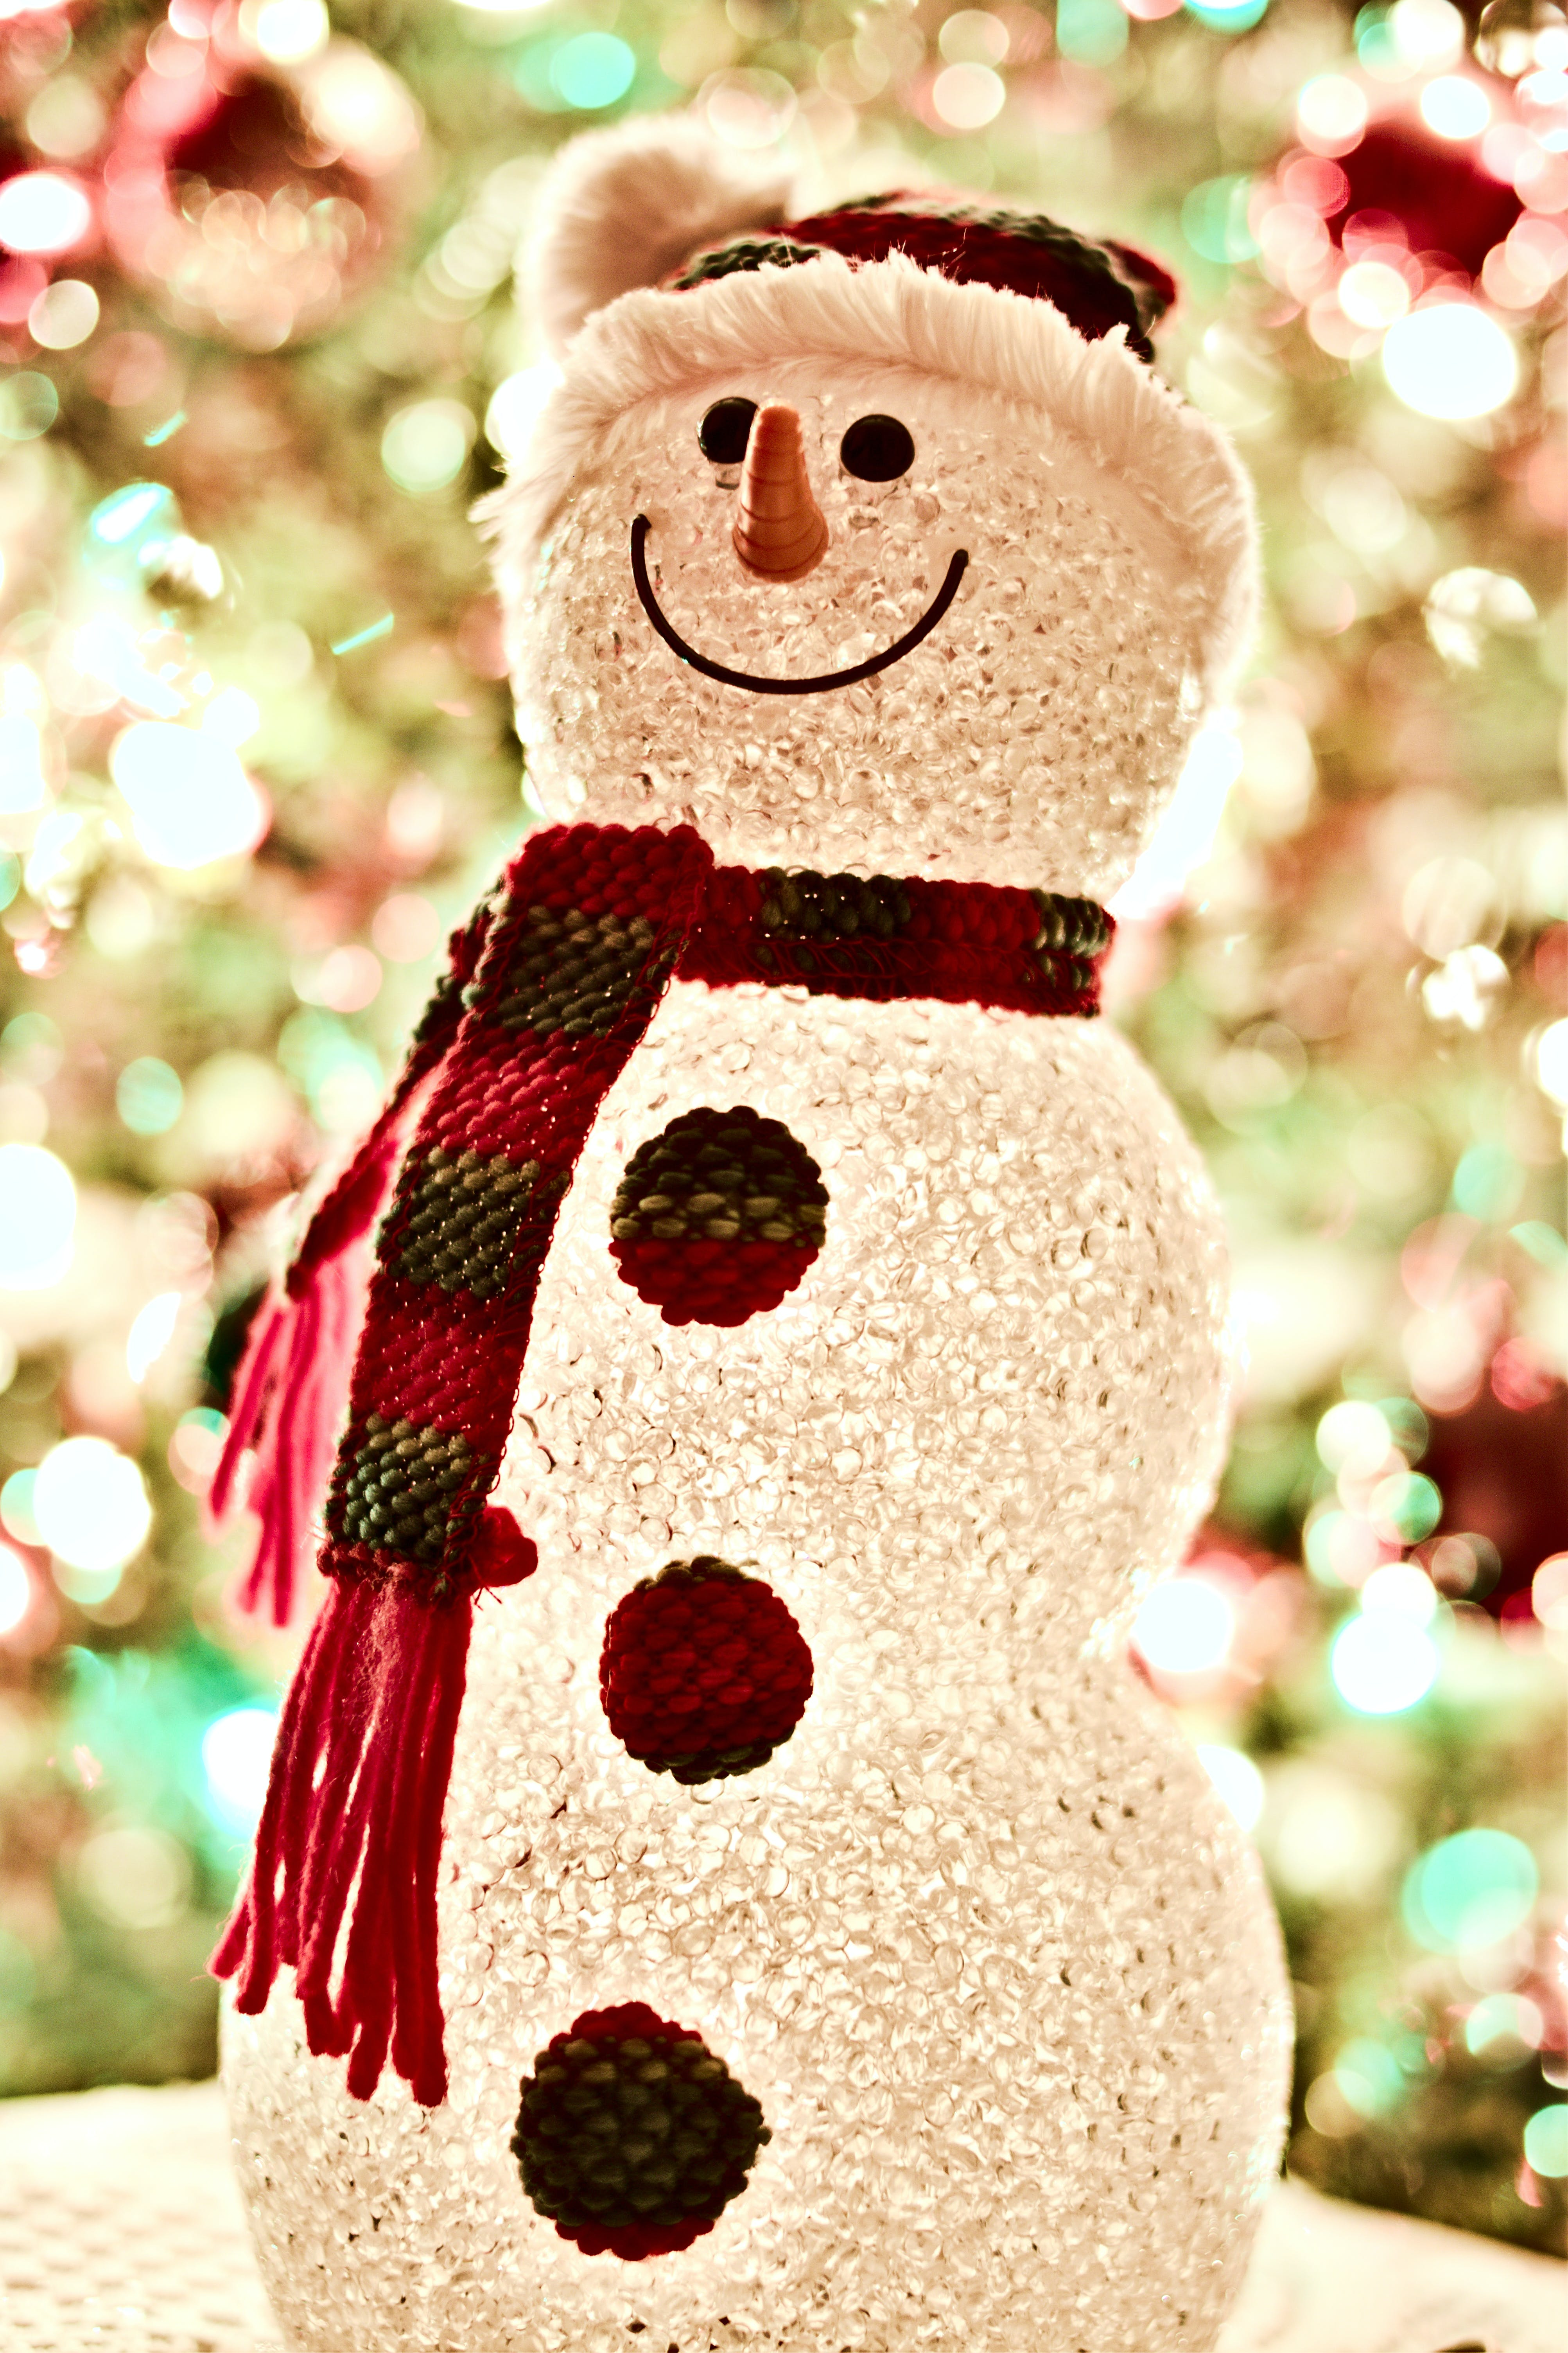 Snowman Wearing Scarf Led Lamp